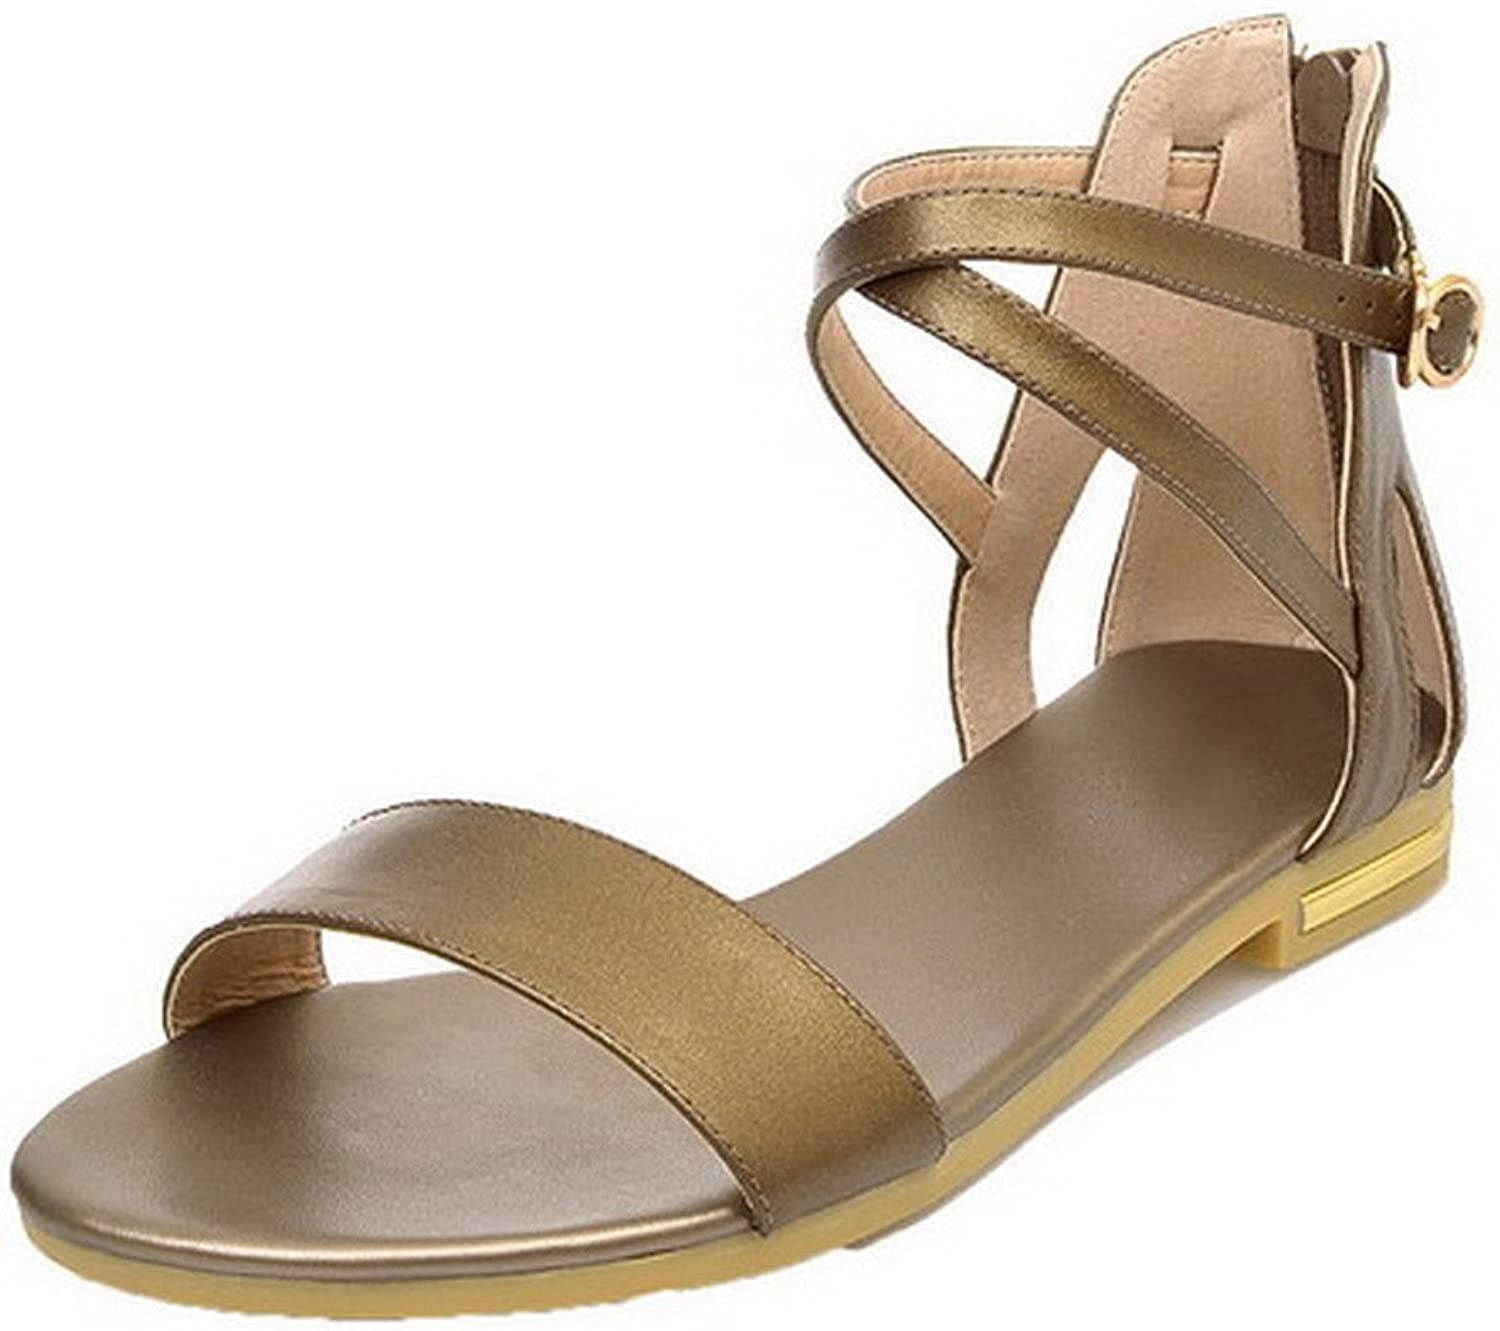 WeenFashion Women's PU Zipper Open Toe Low-Heels Solid Sandals, gold, 39